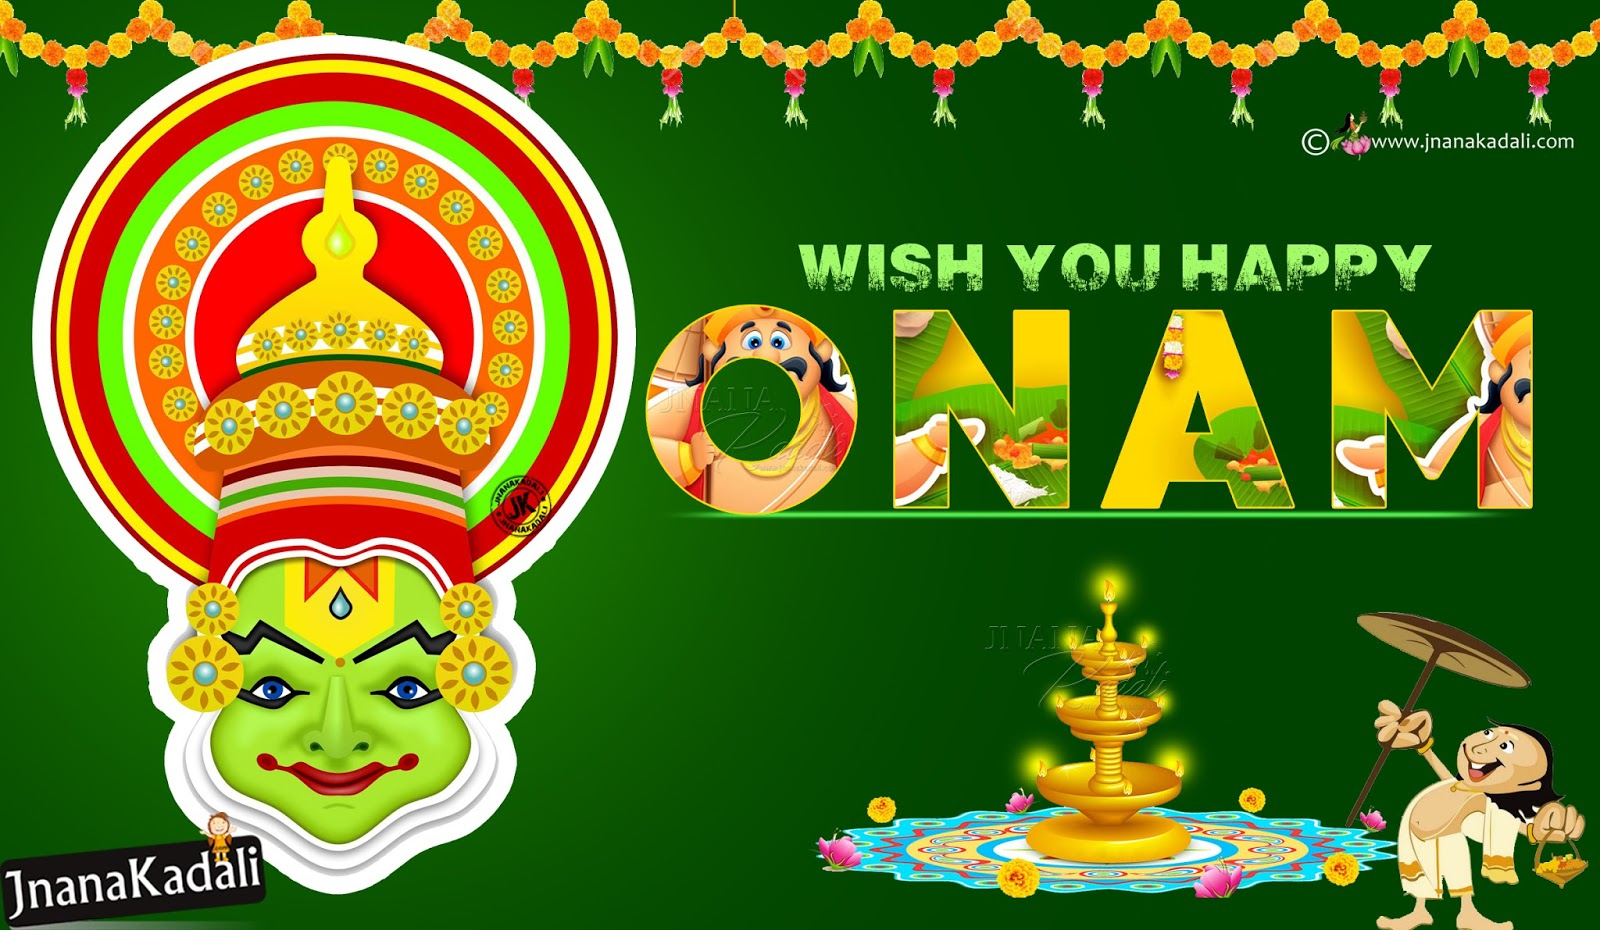 Advanced Onam Greetings With Hd Wallpapers In English Happy Onam